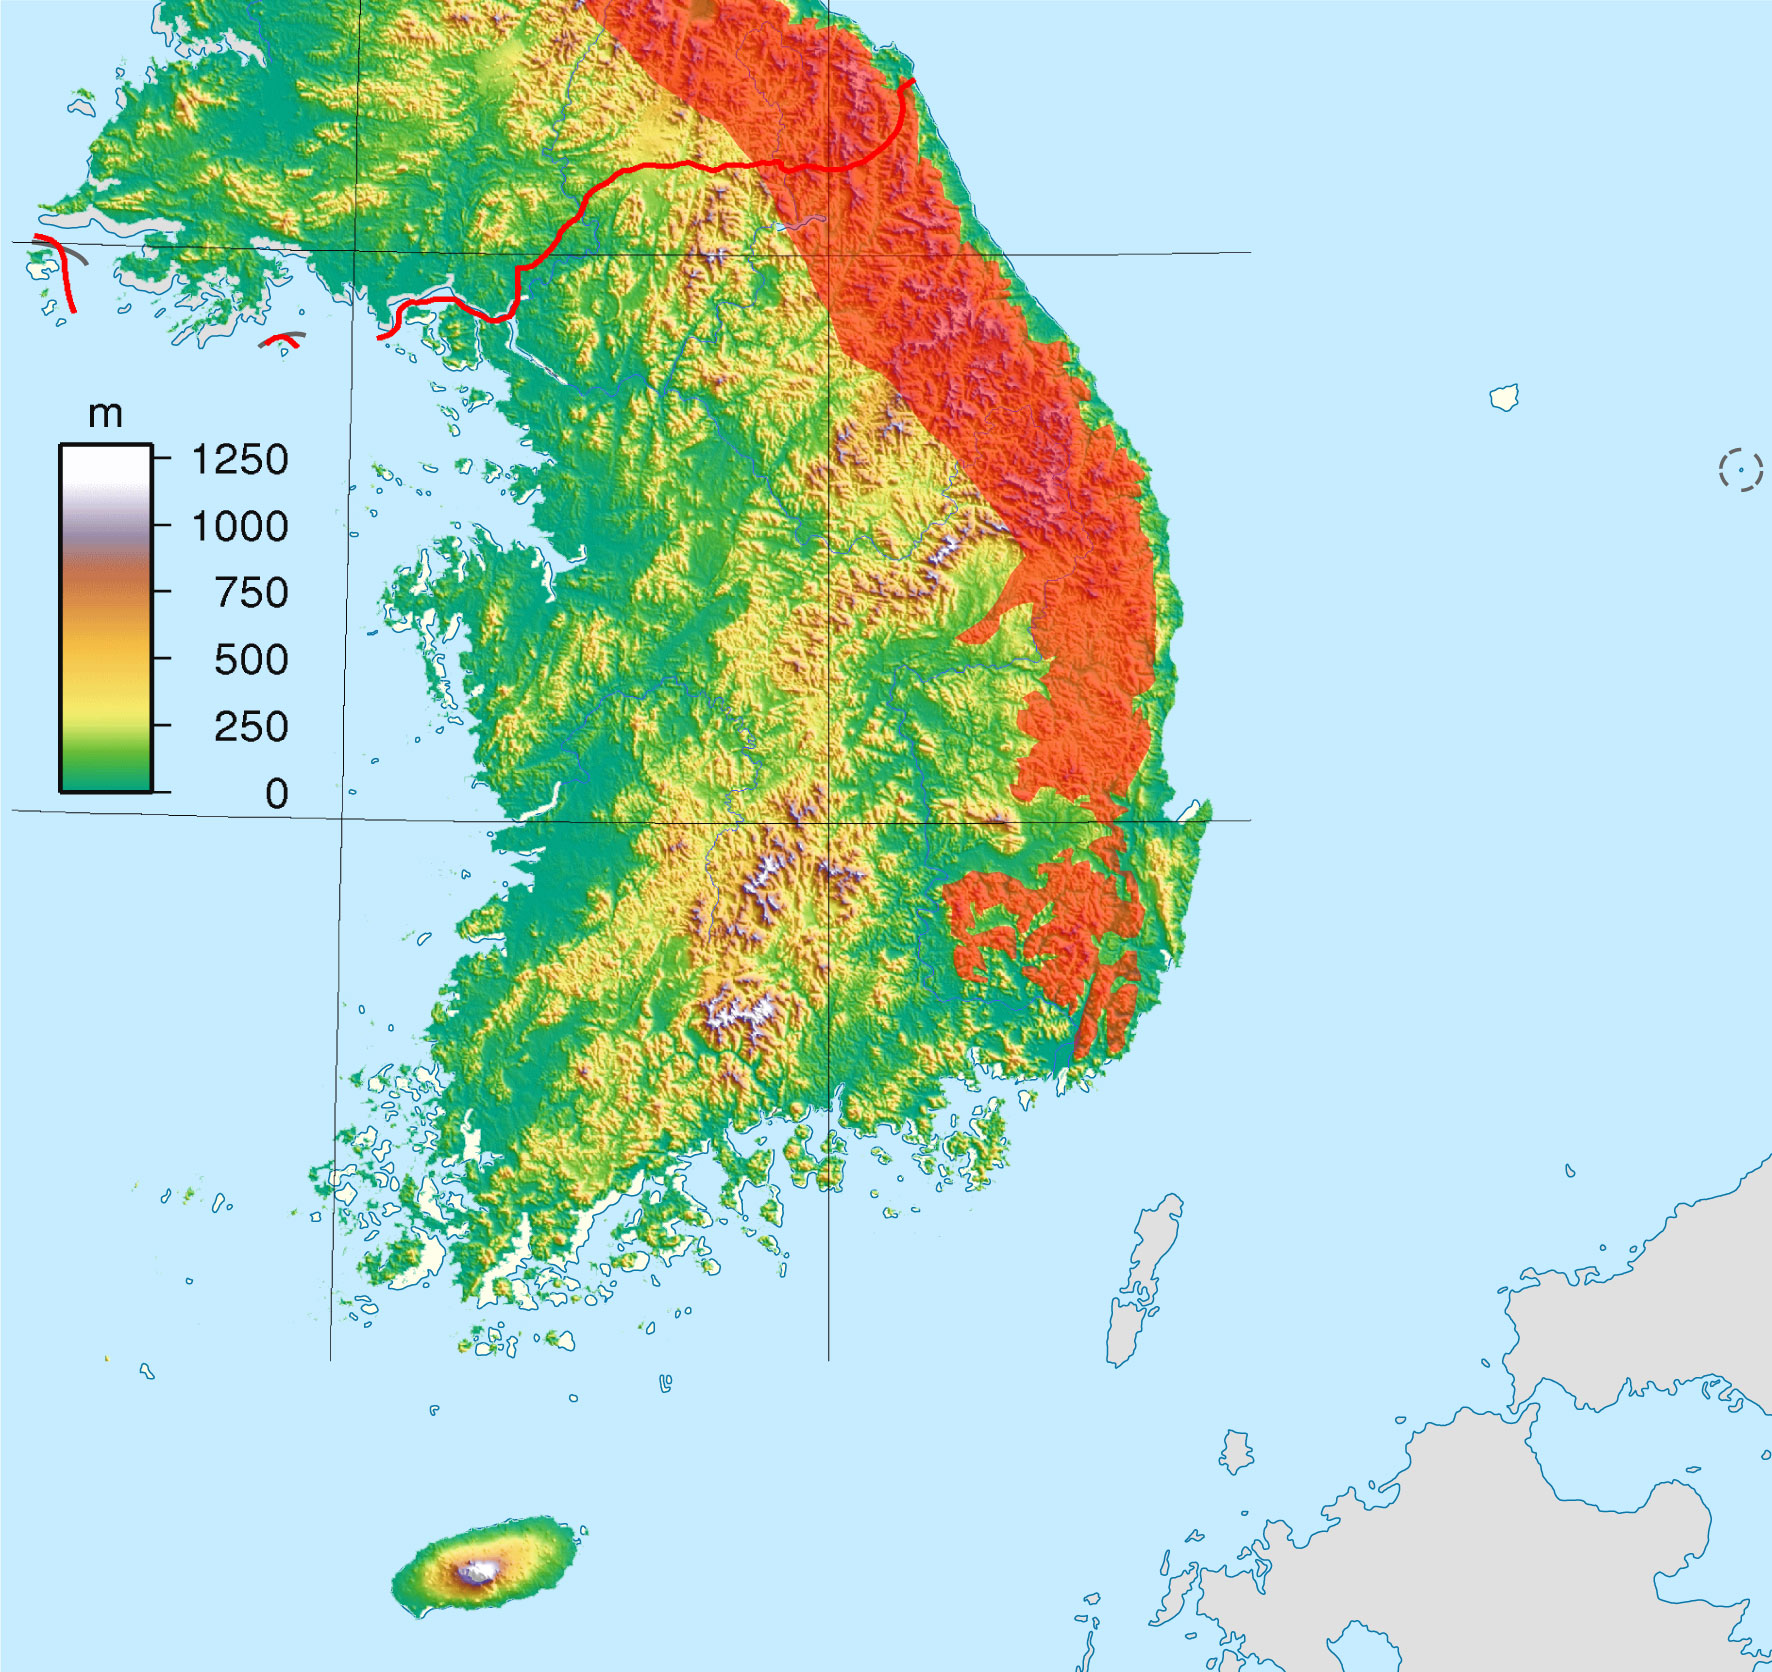 Filesouth korea location map topography with taebaek mountains filesouth korea location map topography with taebaek mountains markedg gumiabroncs Image collections